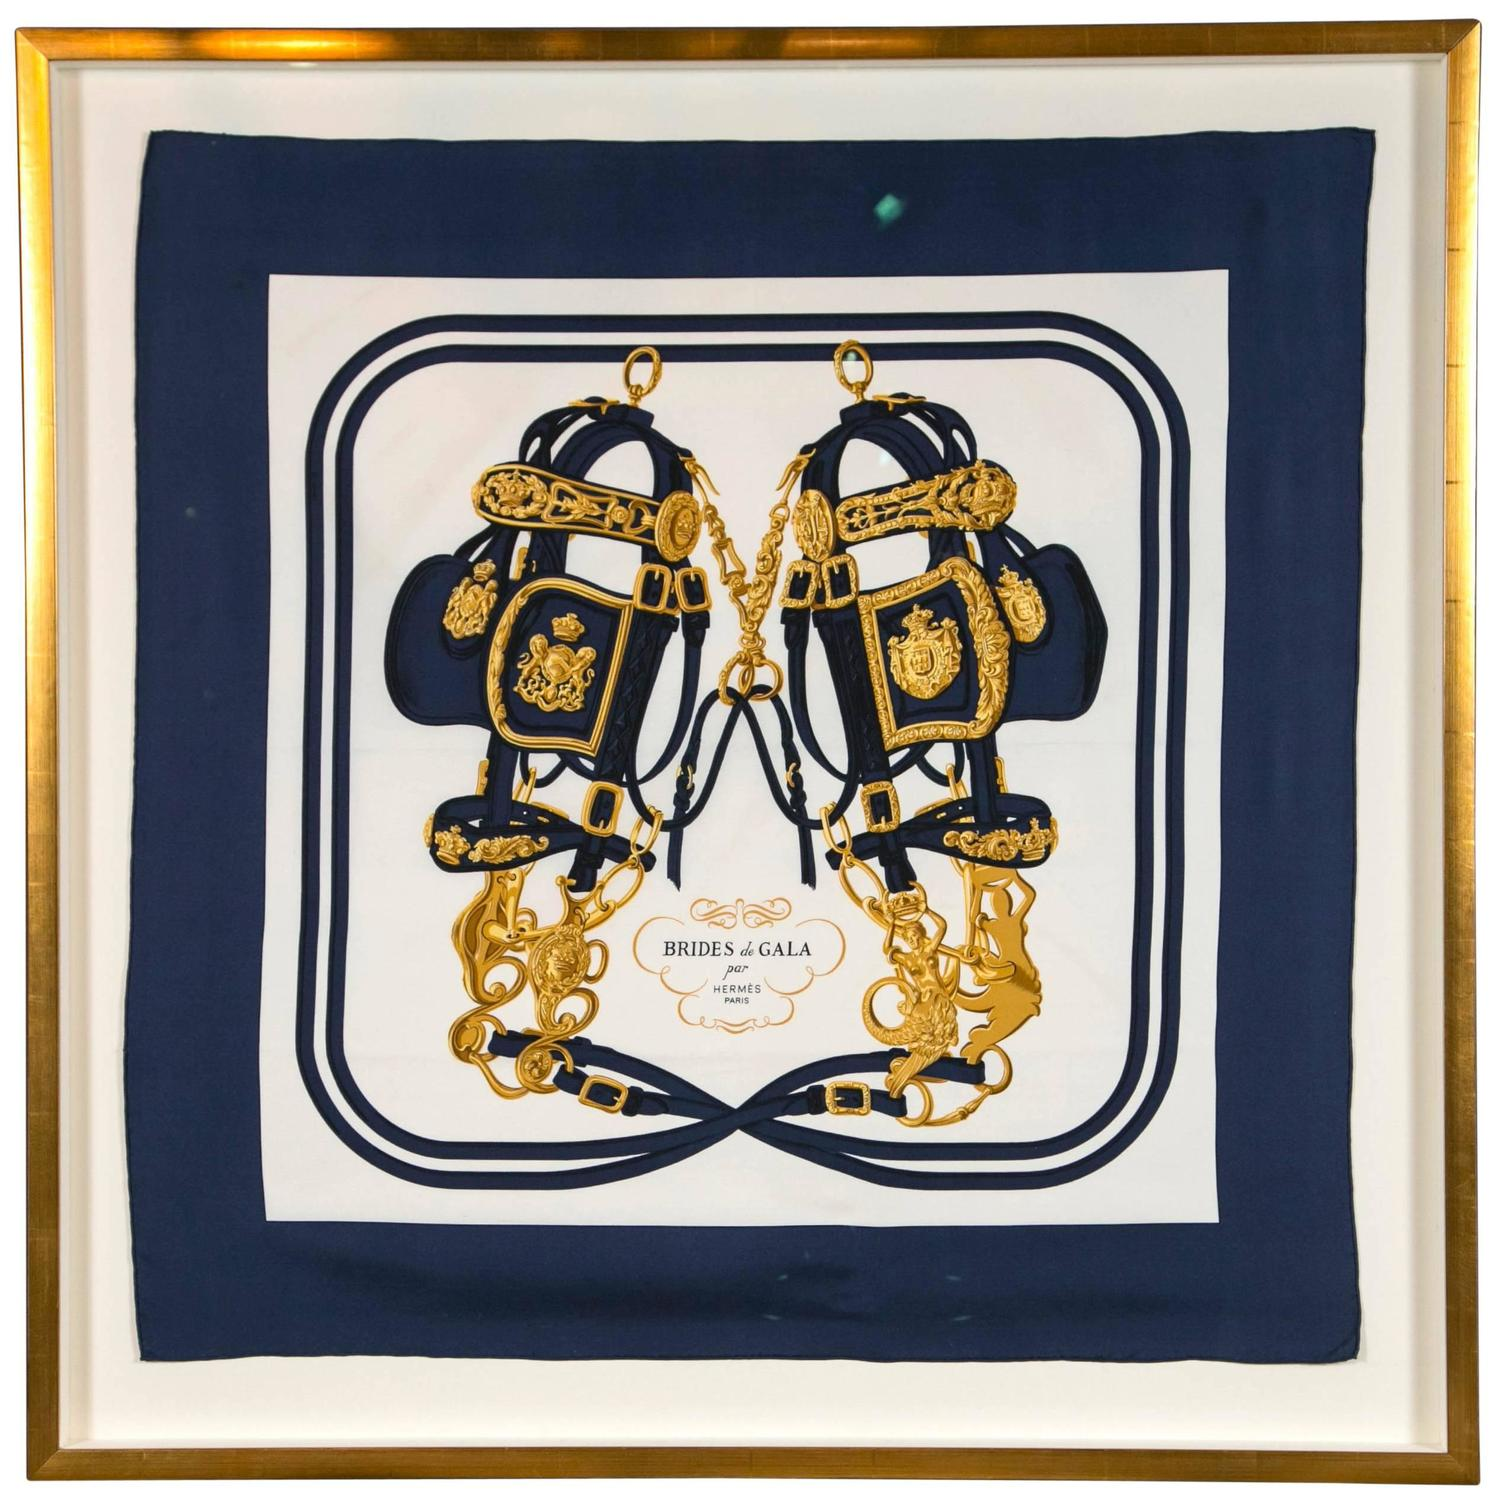 hermes scarf framed in gilted frame for sale at 1stdibs